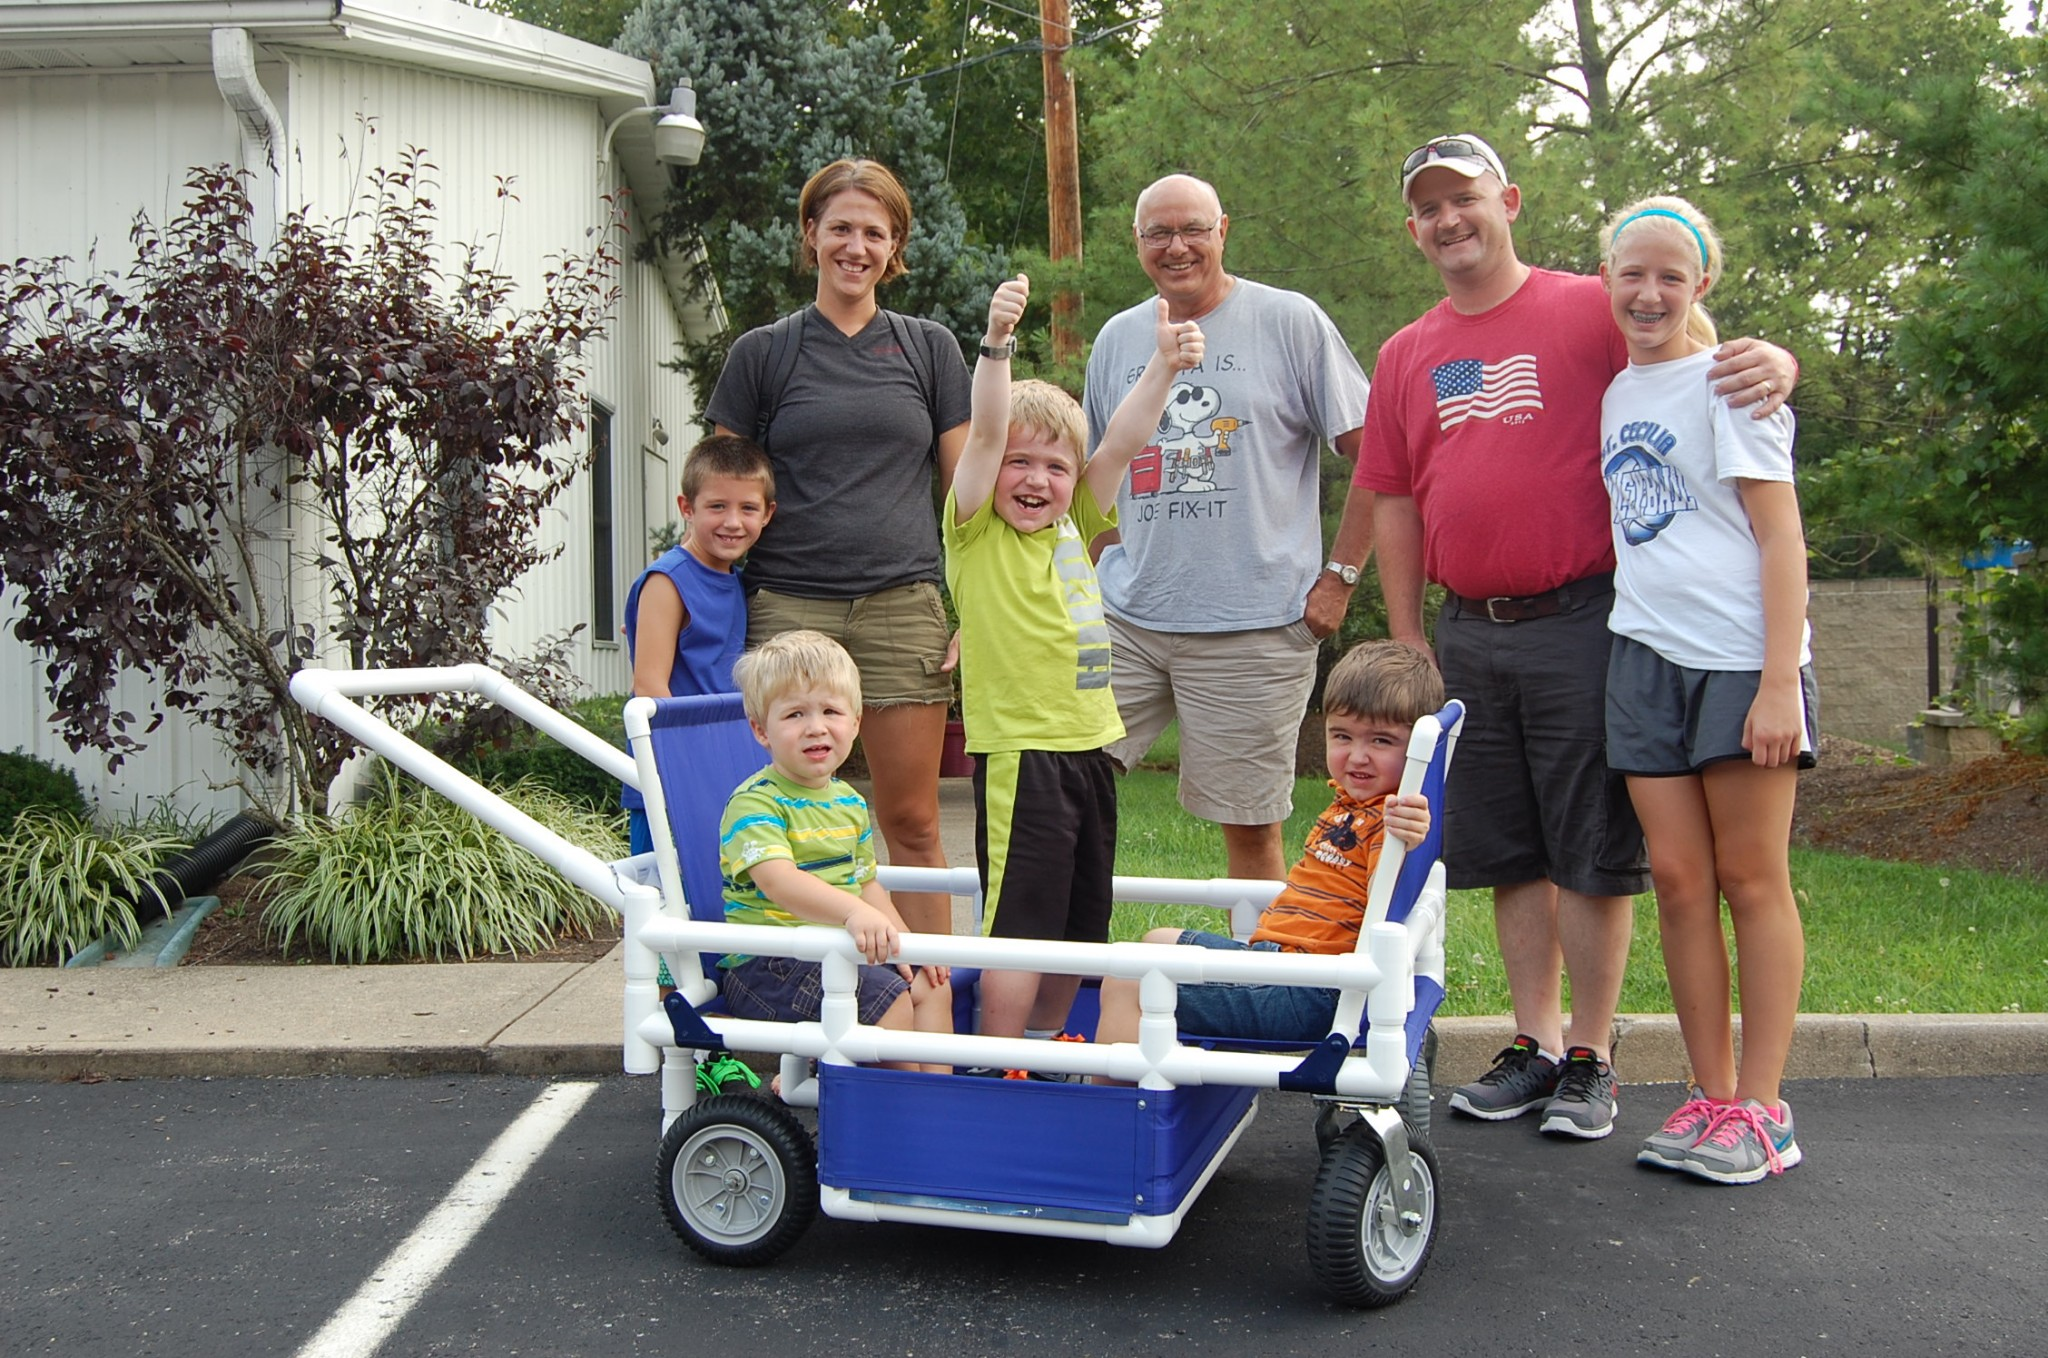 The Vertin family with modular stroller